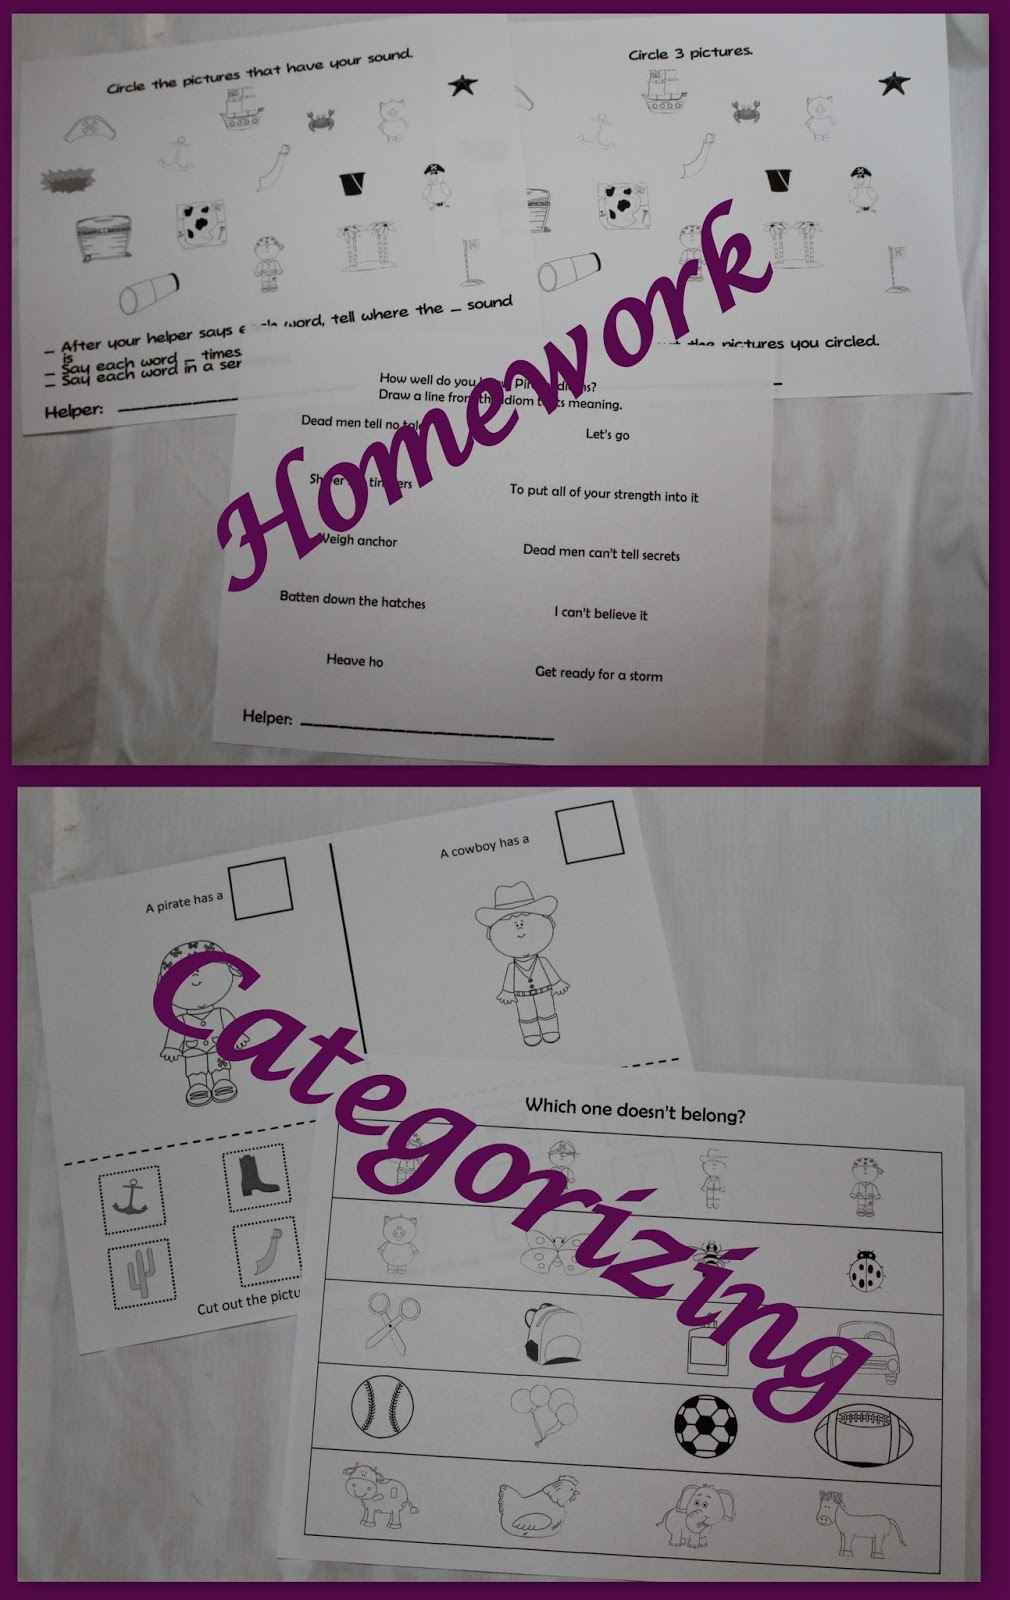 September 2015Old School Speech  September 2015 There are general artic homework sheets  describing homework sheet  and a  pirate idiom sheet that can be sent home  There is a sorting sheet and a   what